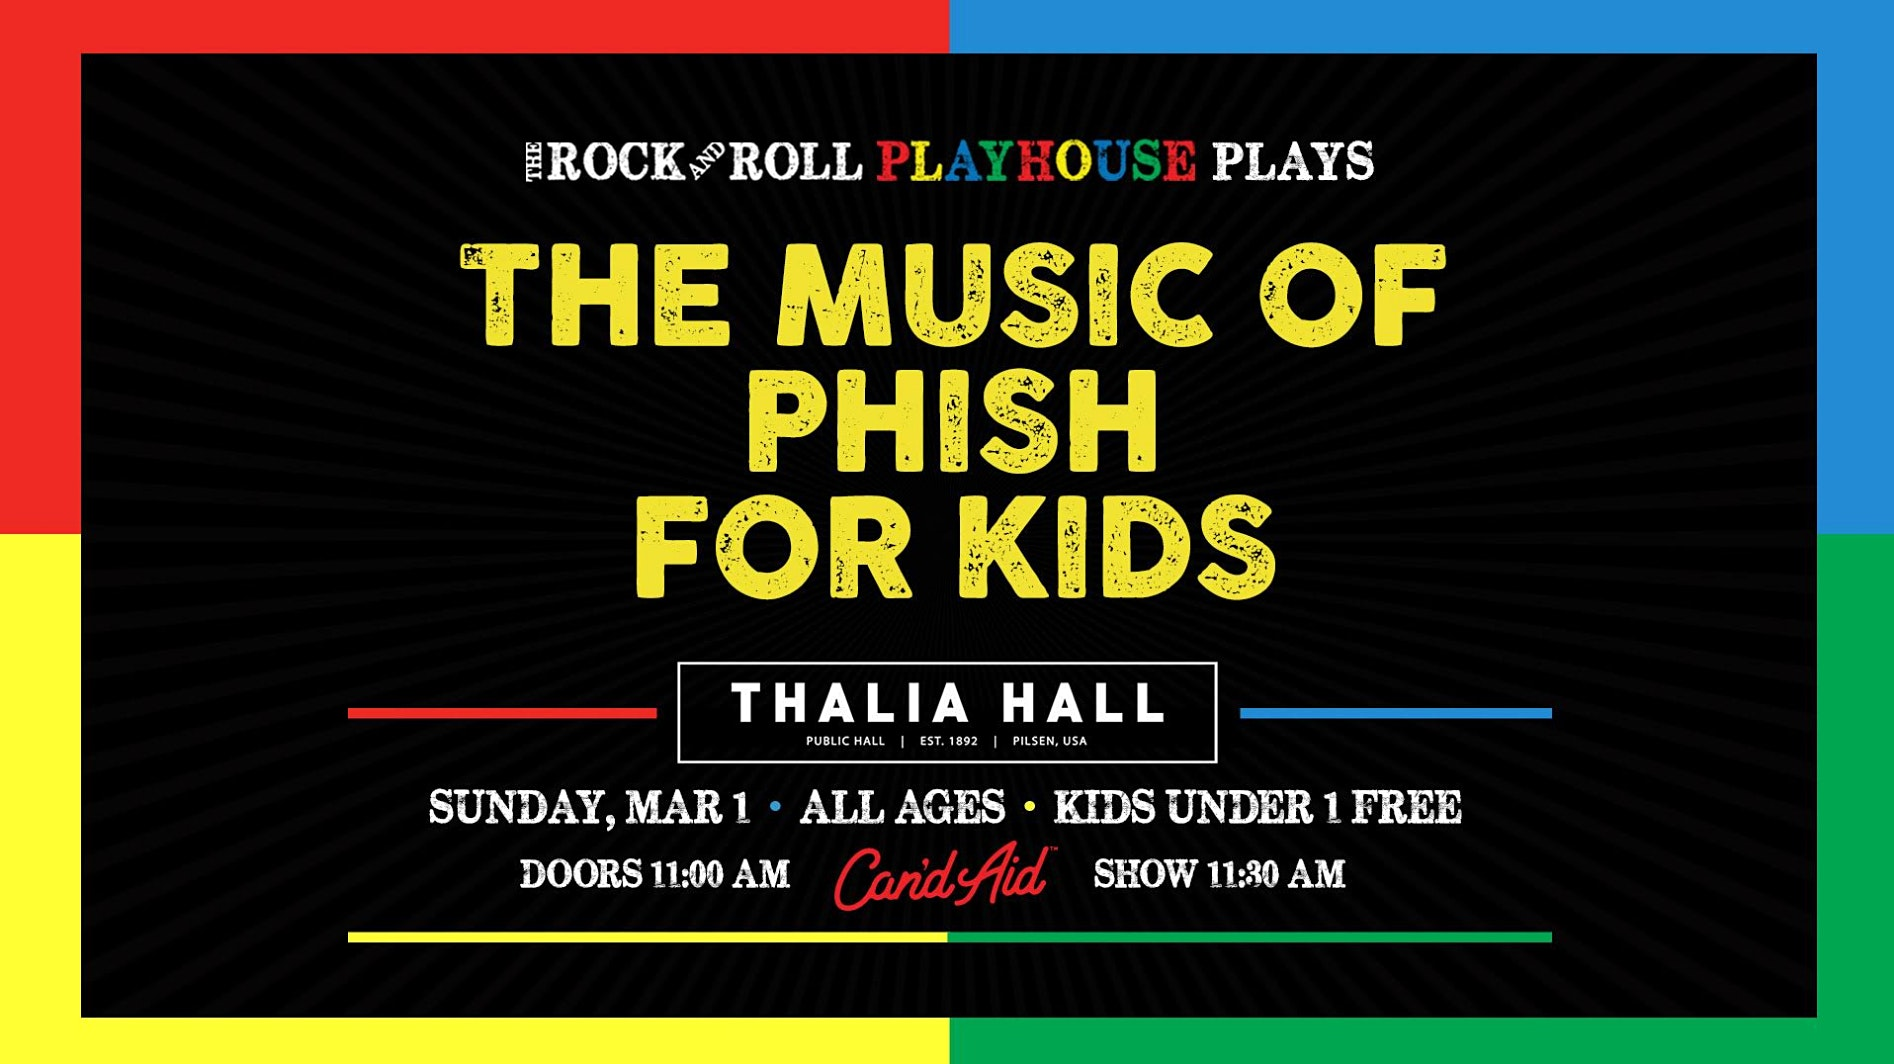 The Rock and Roll Playhouse presents the Music of Phish for Kids